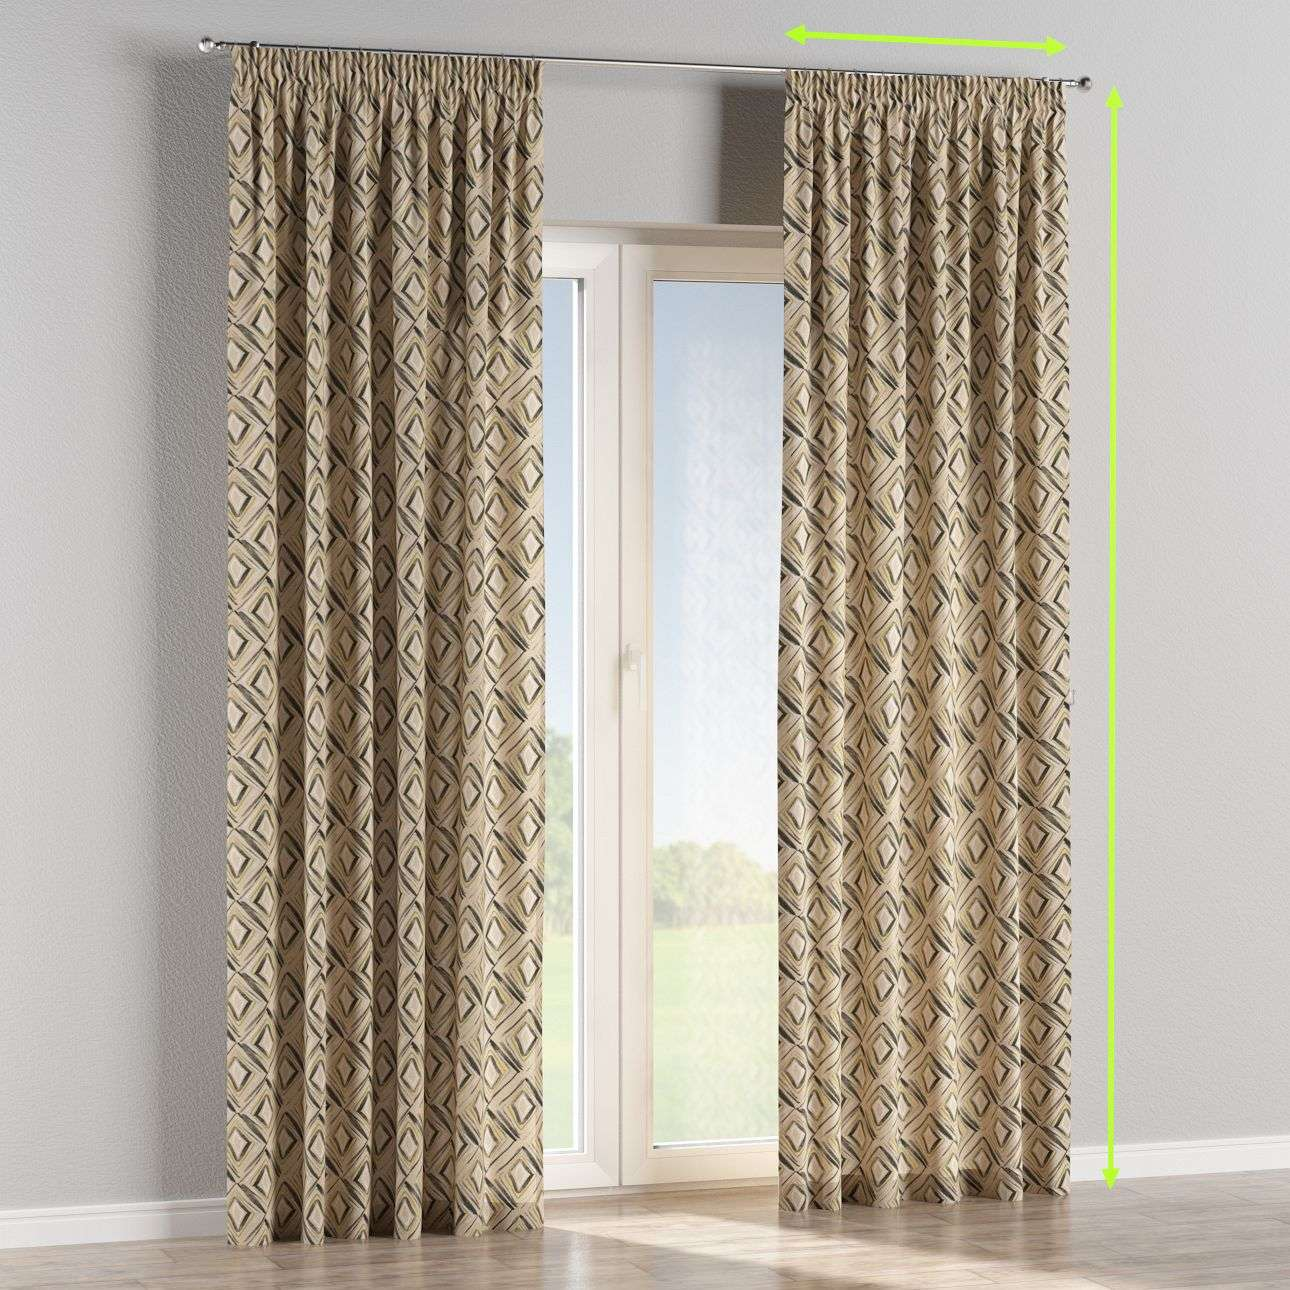 Pencil pleat curtains in collection Londres, fabric: 140-46